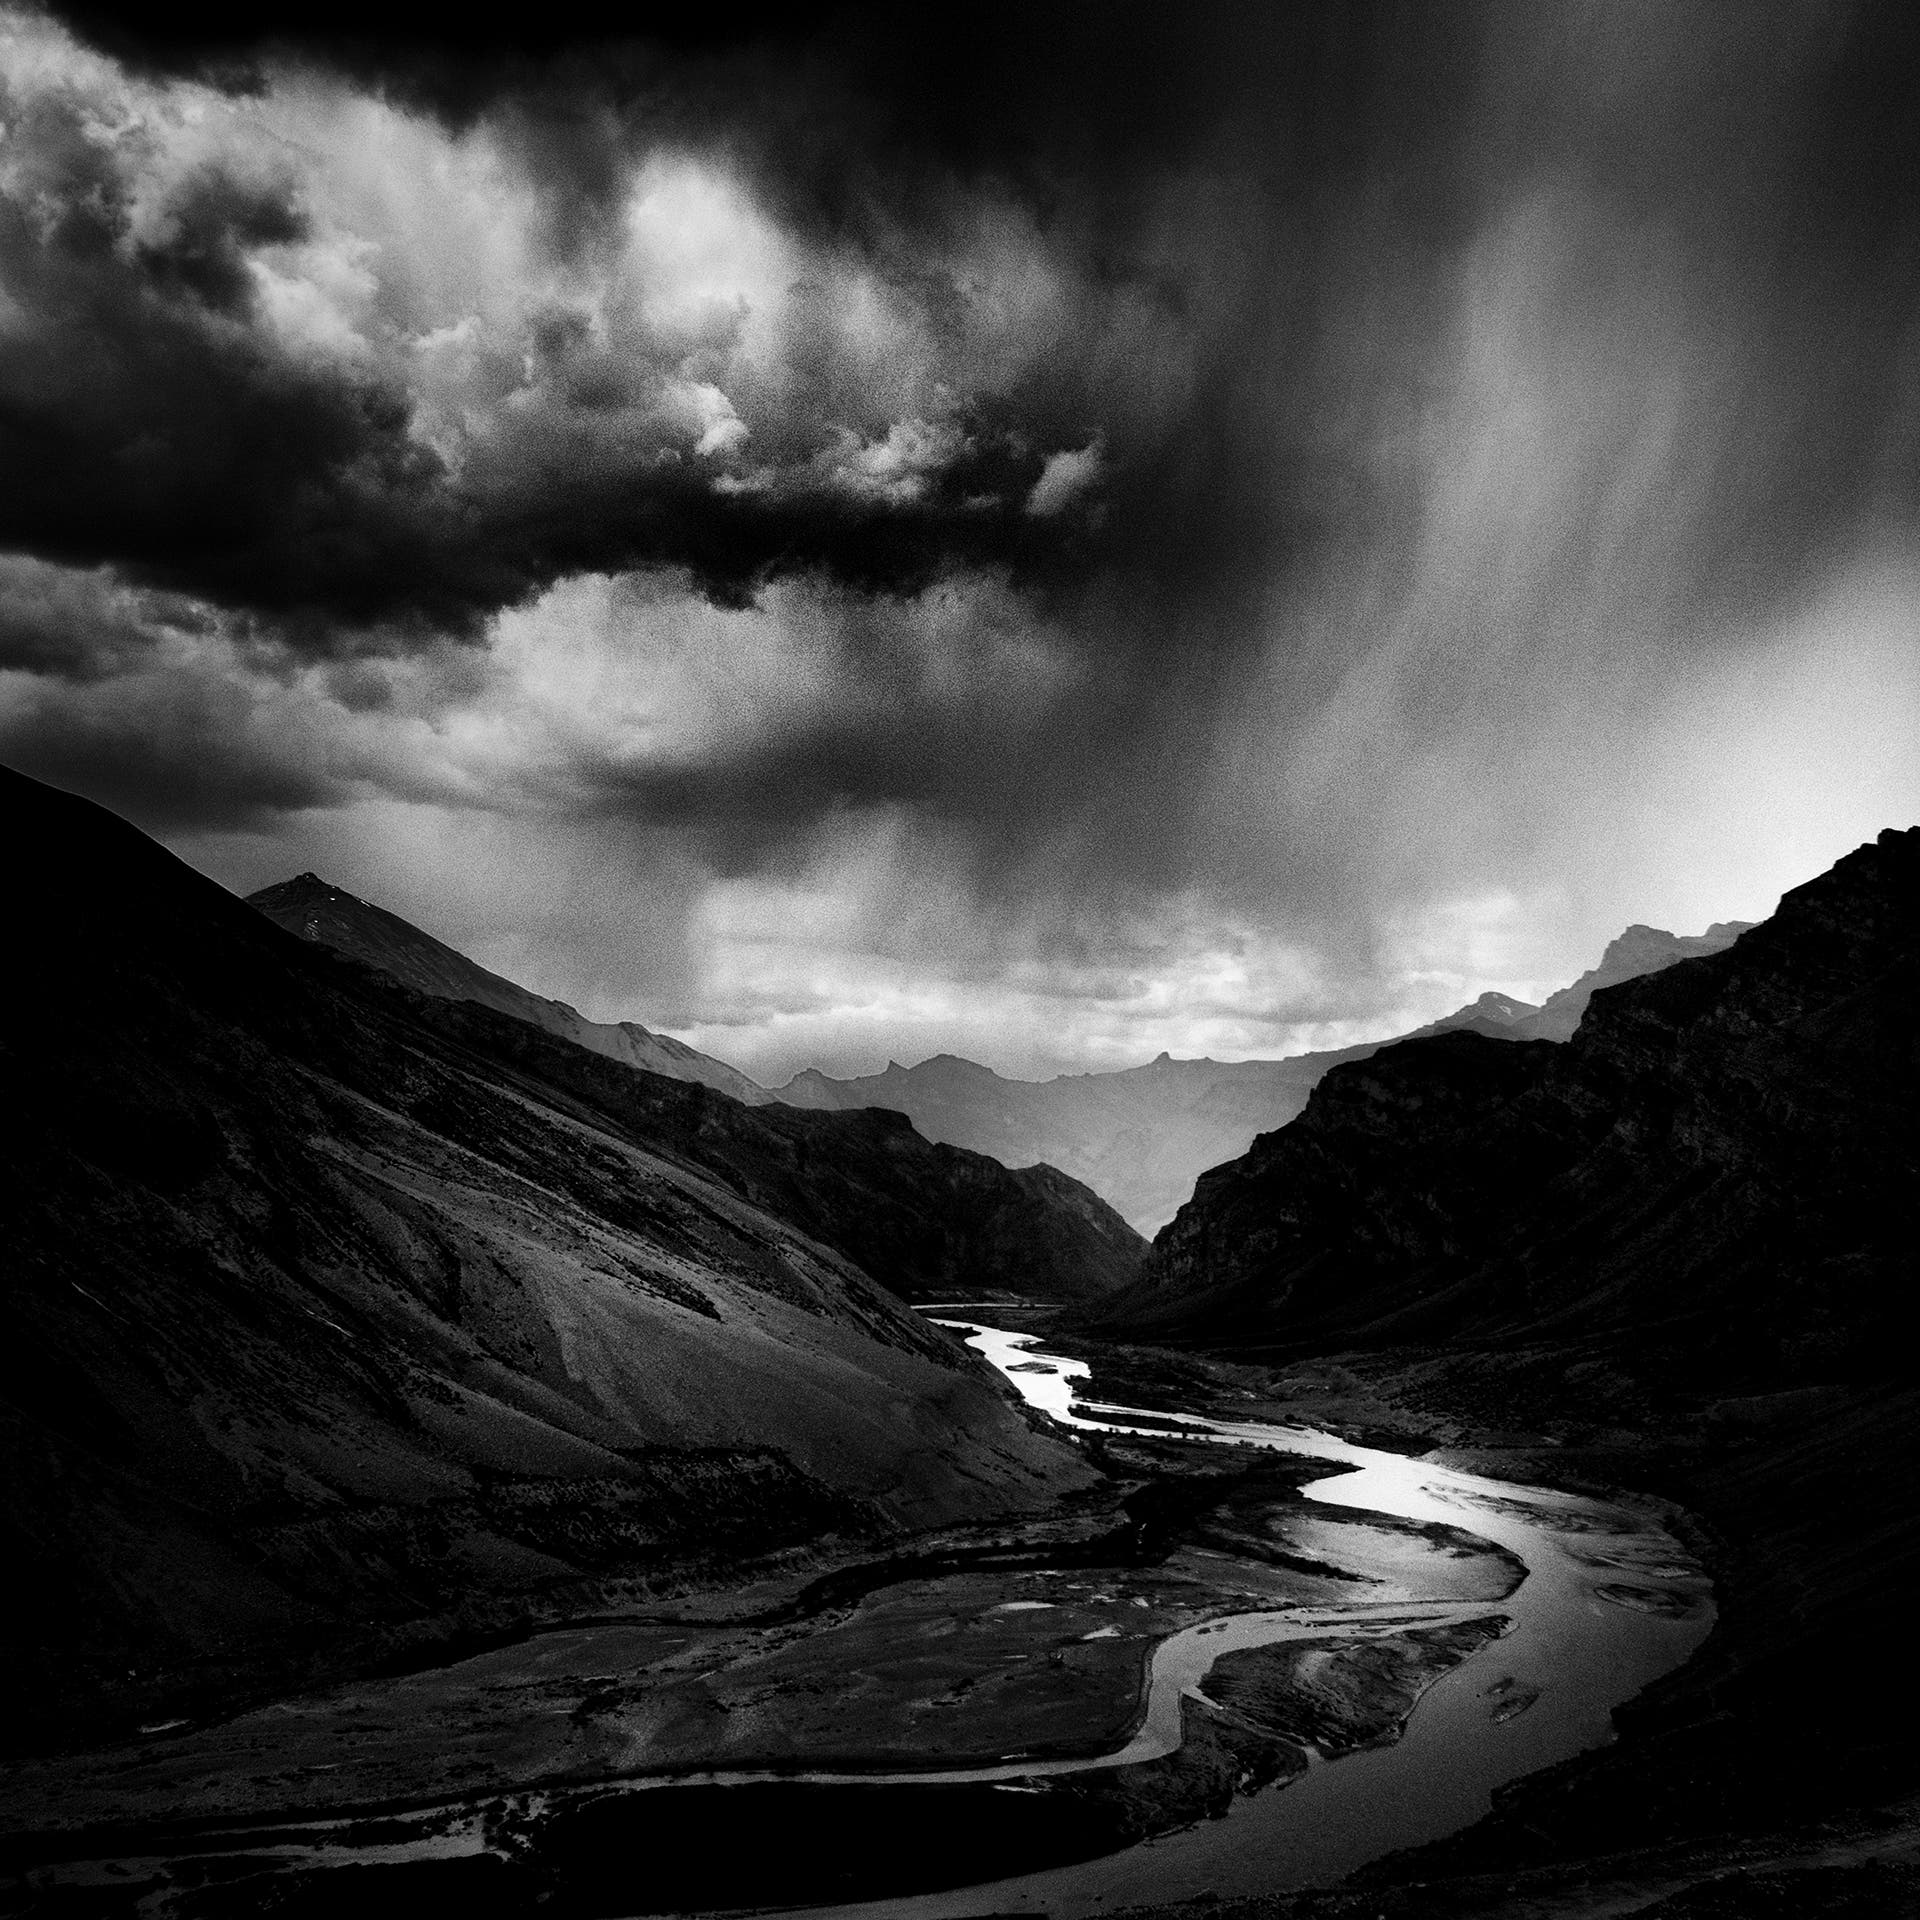 landscape roy jayanta series change climate himalayan odyssey hypnotic photographer nature professional portrait fine strkng awareness sense bigger goal bring